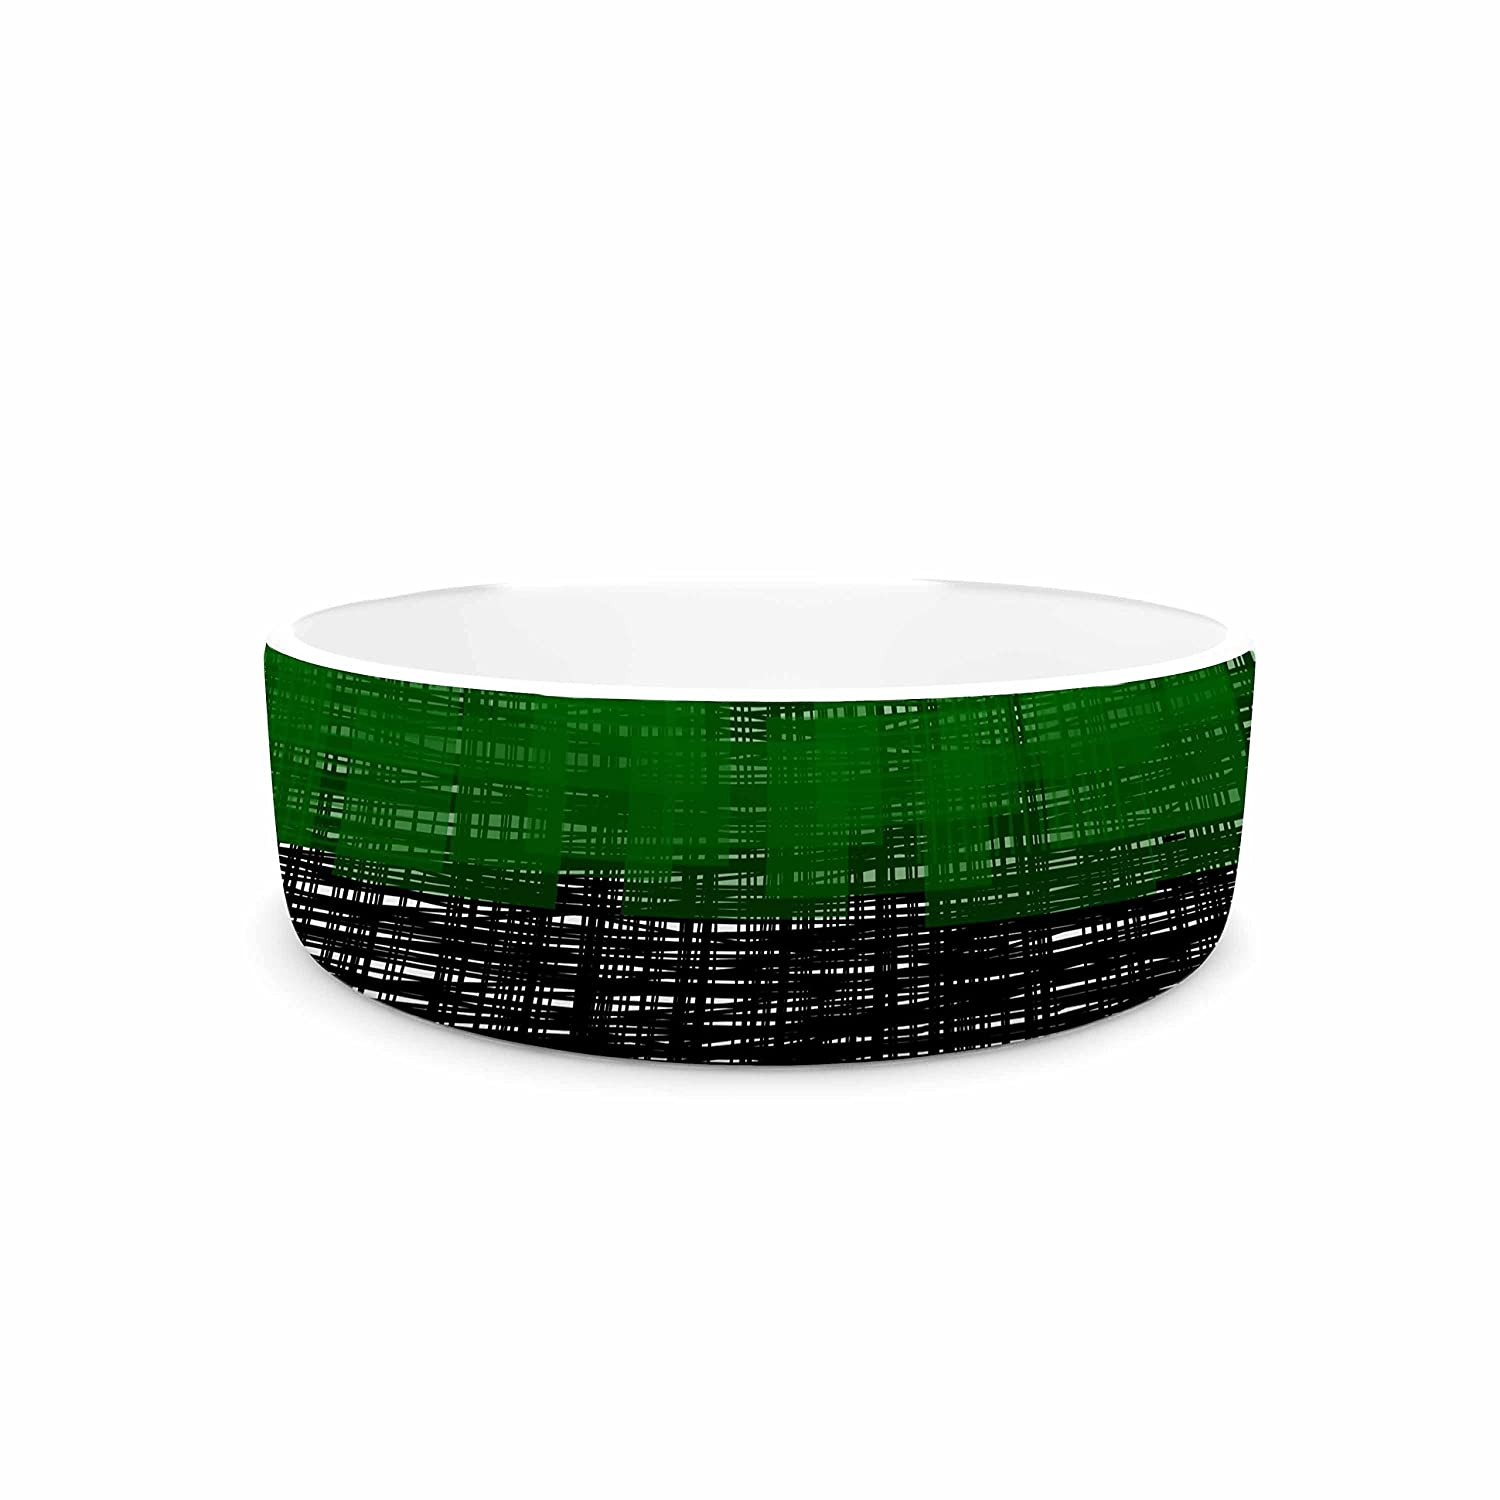 KESS InHouse Trebam Platno (Green) Green Black Digital Pet Bowl, 7  Diameter